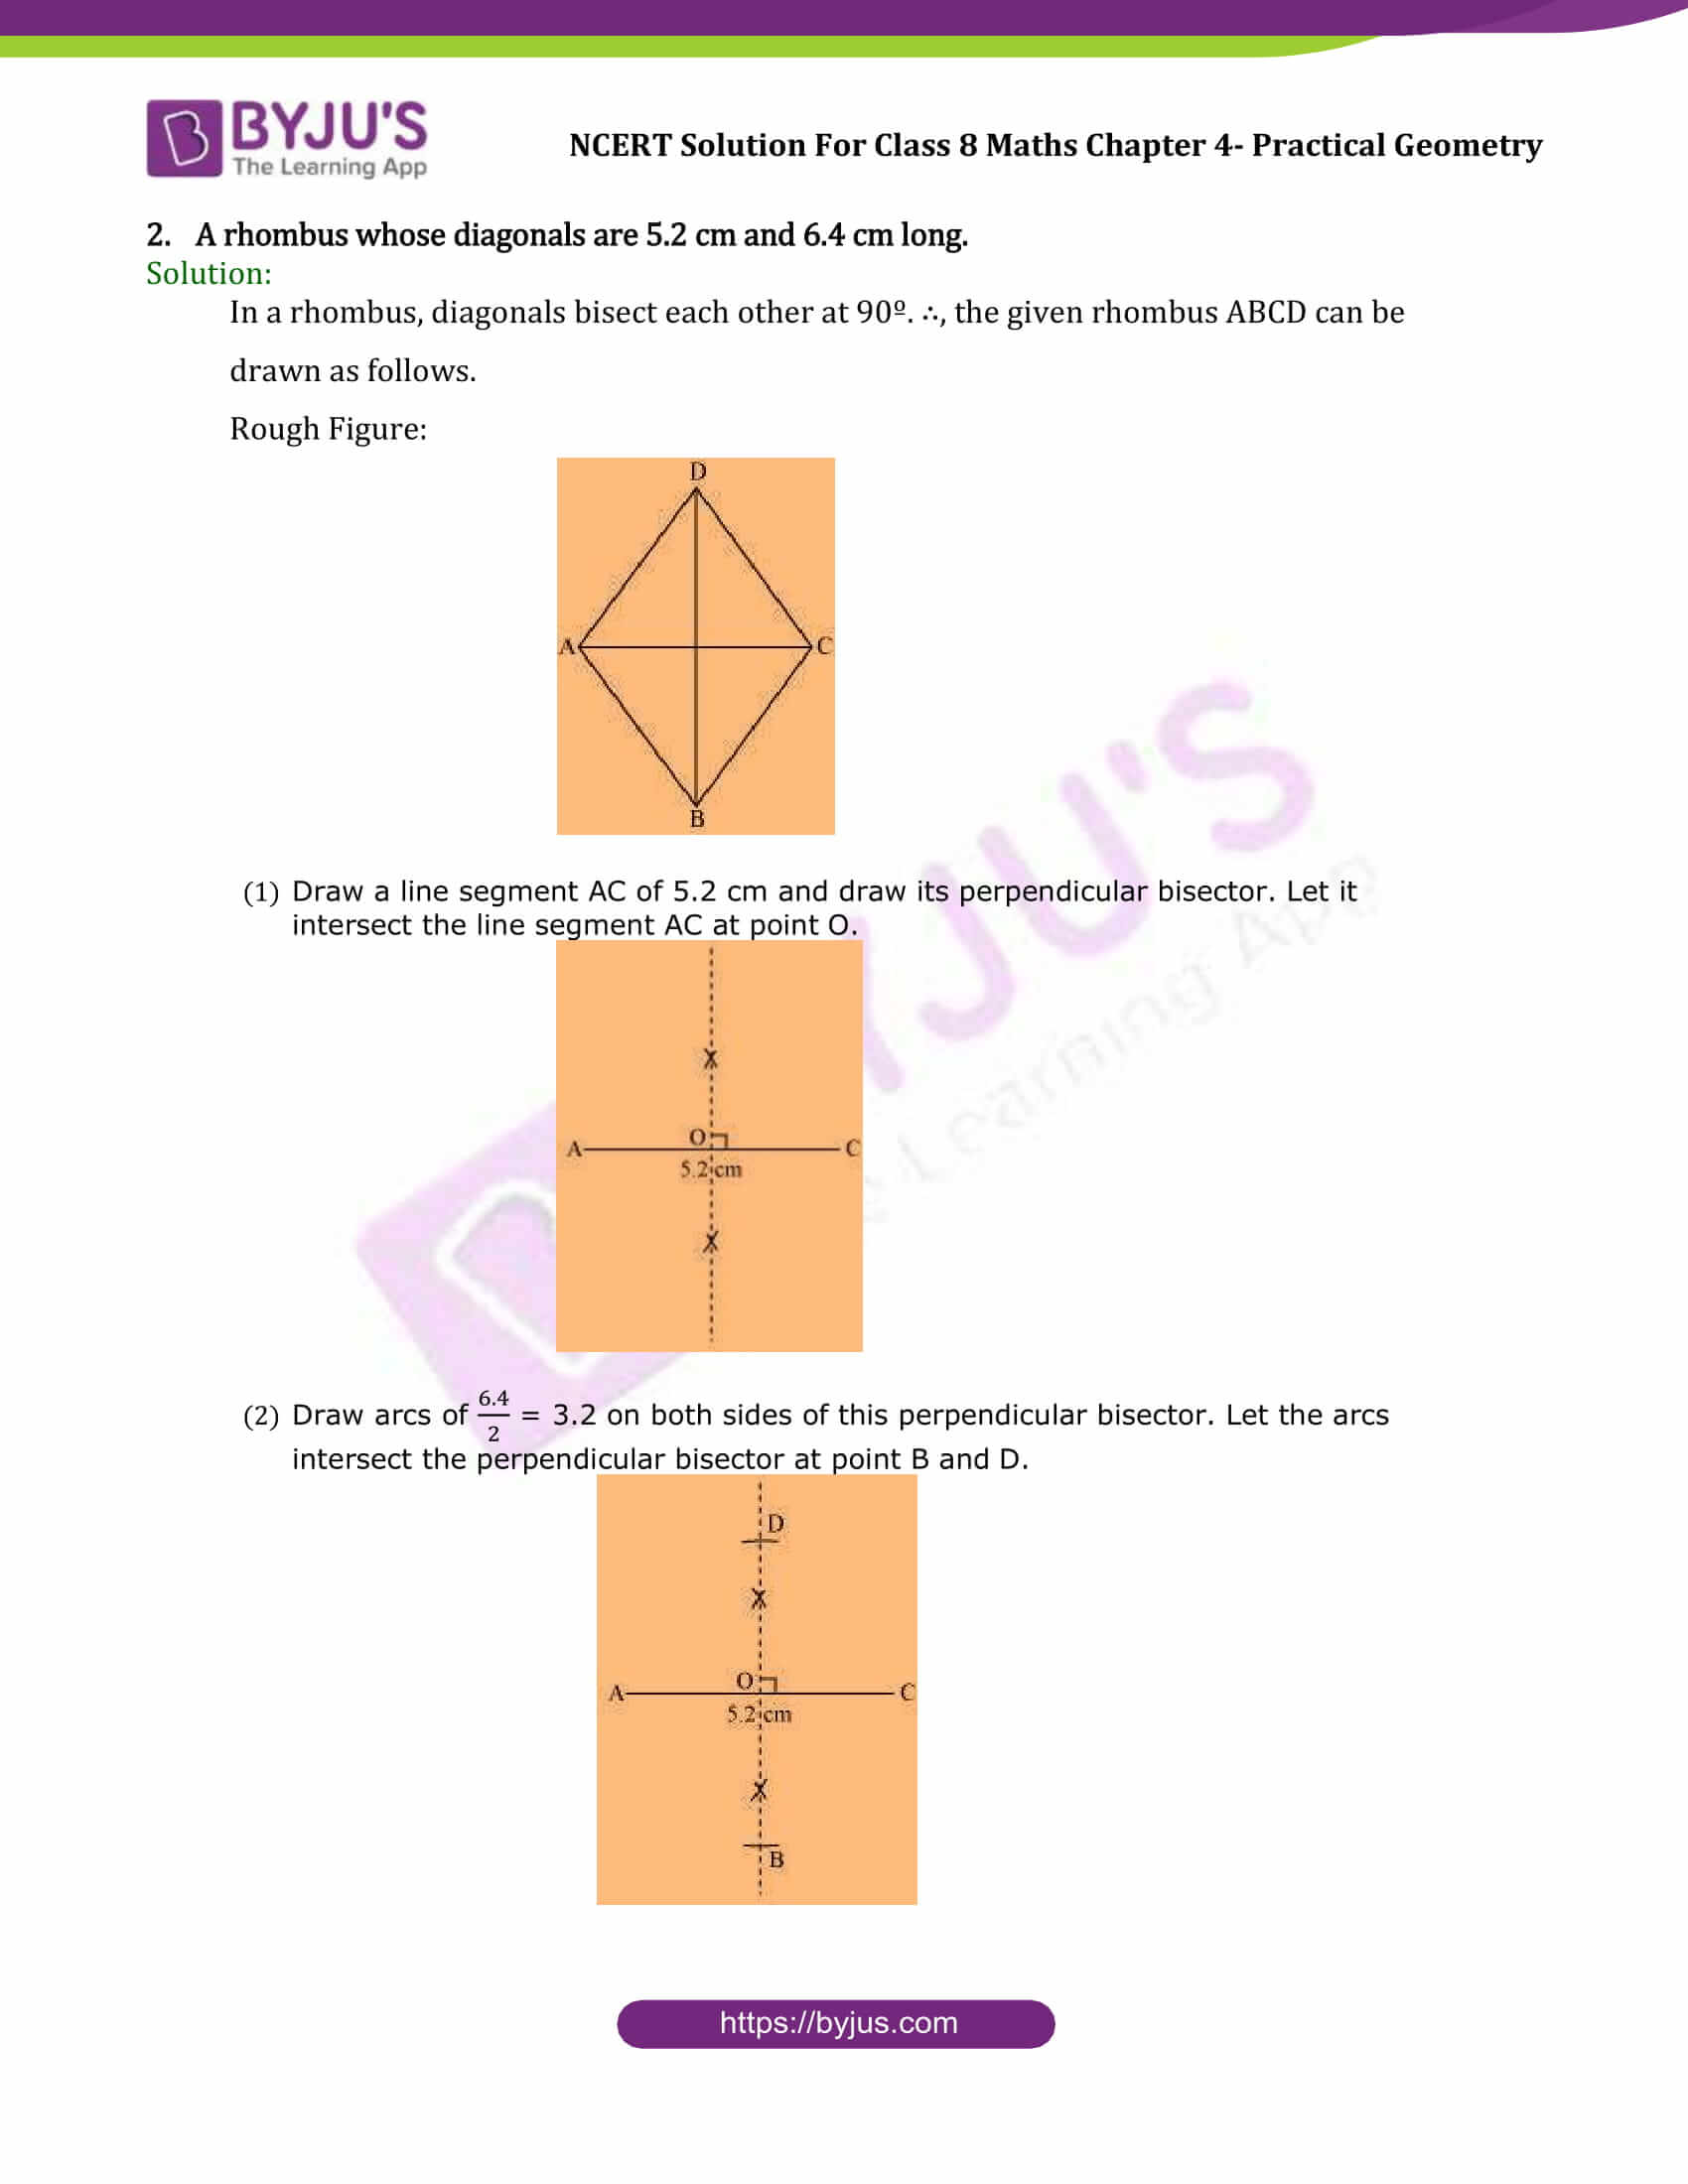 Dissertation on practical geometry